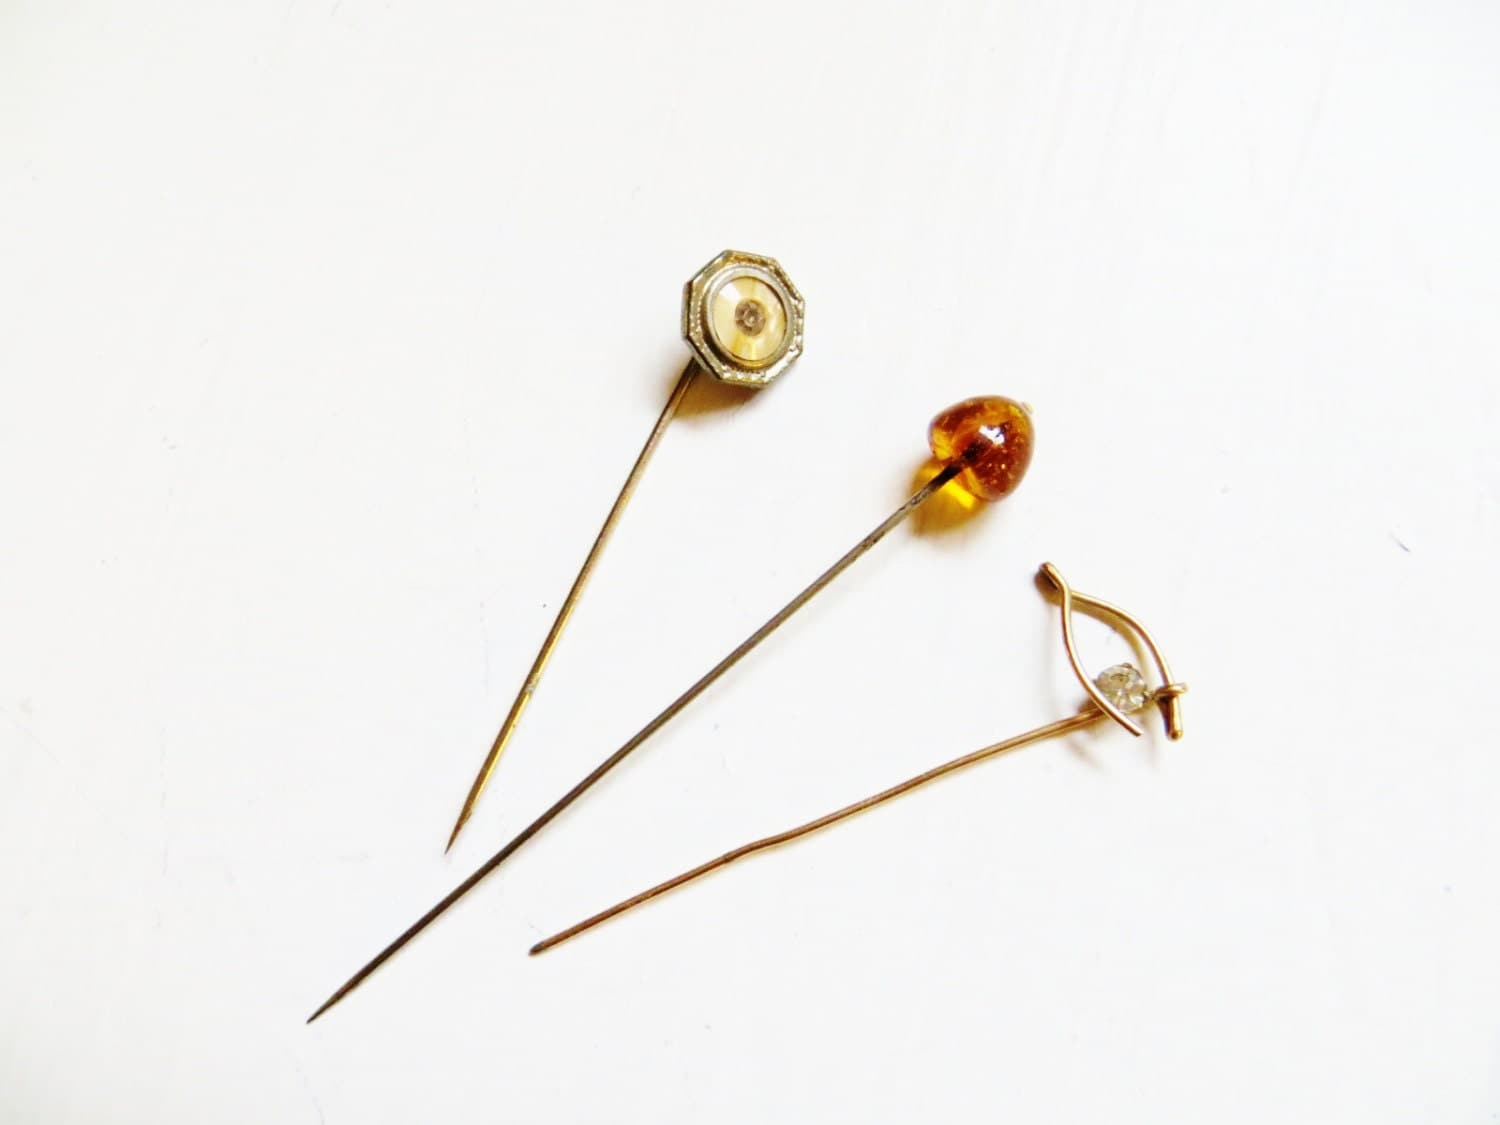 Vintage hatpins how they work